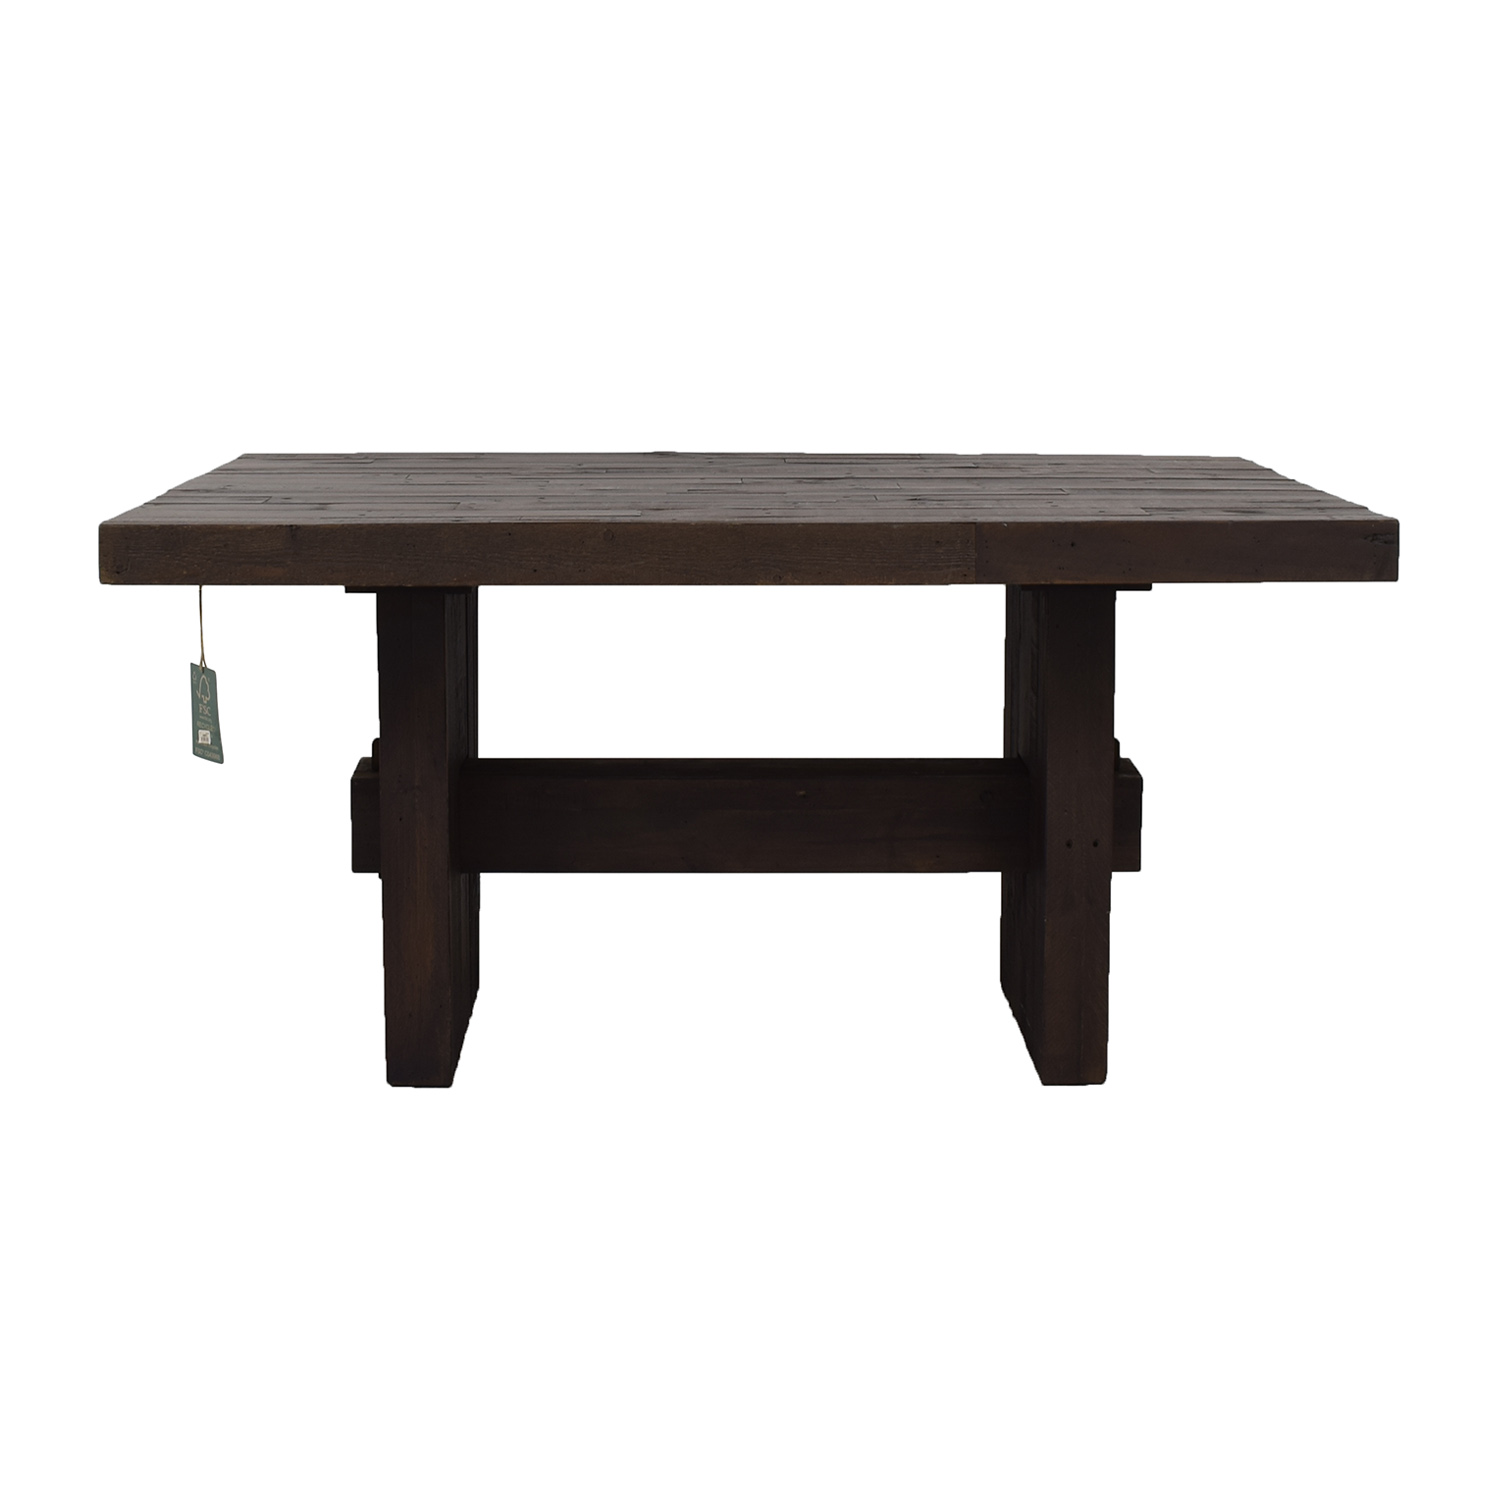 West Elm West Elm Emmerson Reclaimed Wood Dining Table nyc